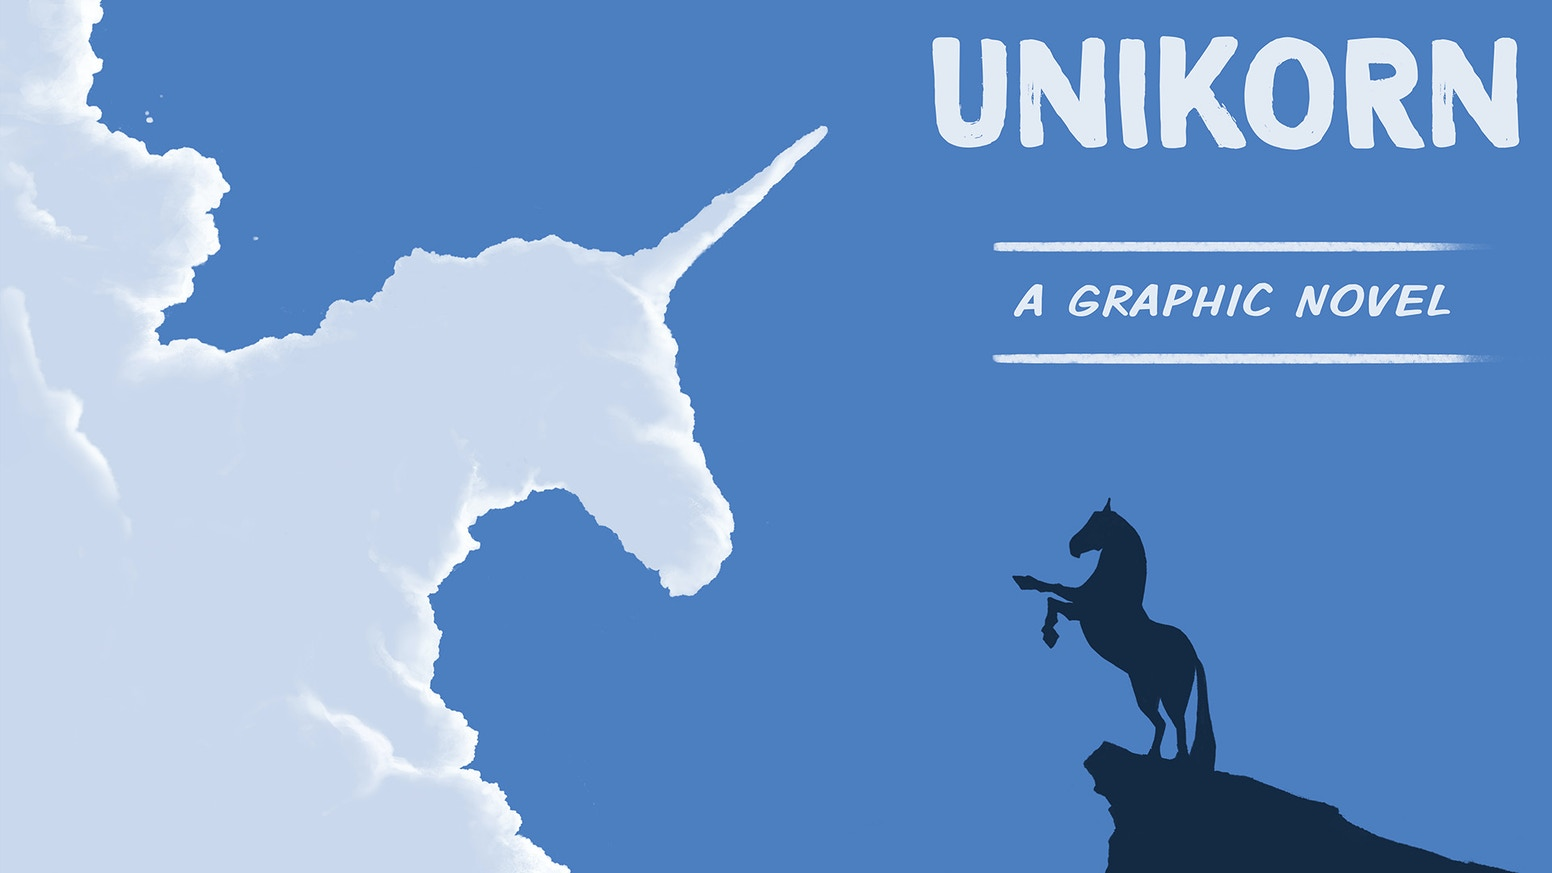 A graphic novel about a little girl who inherits an old horse she believes is a unicorn with a broken horn.